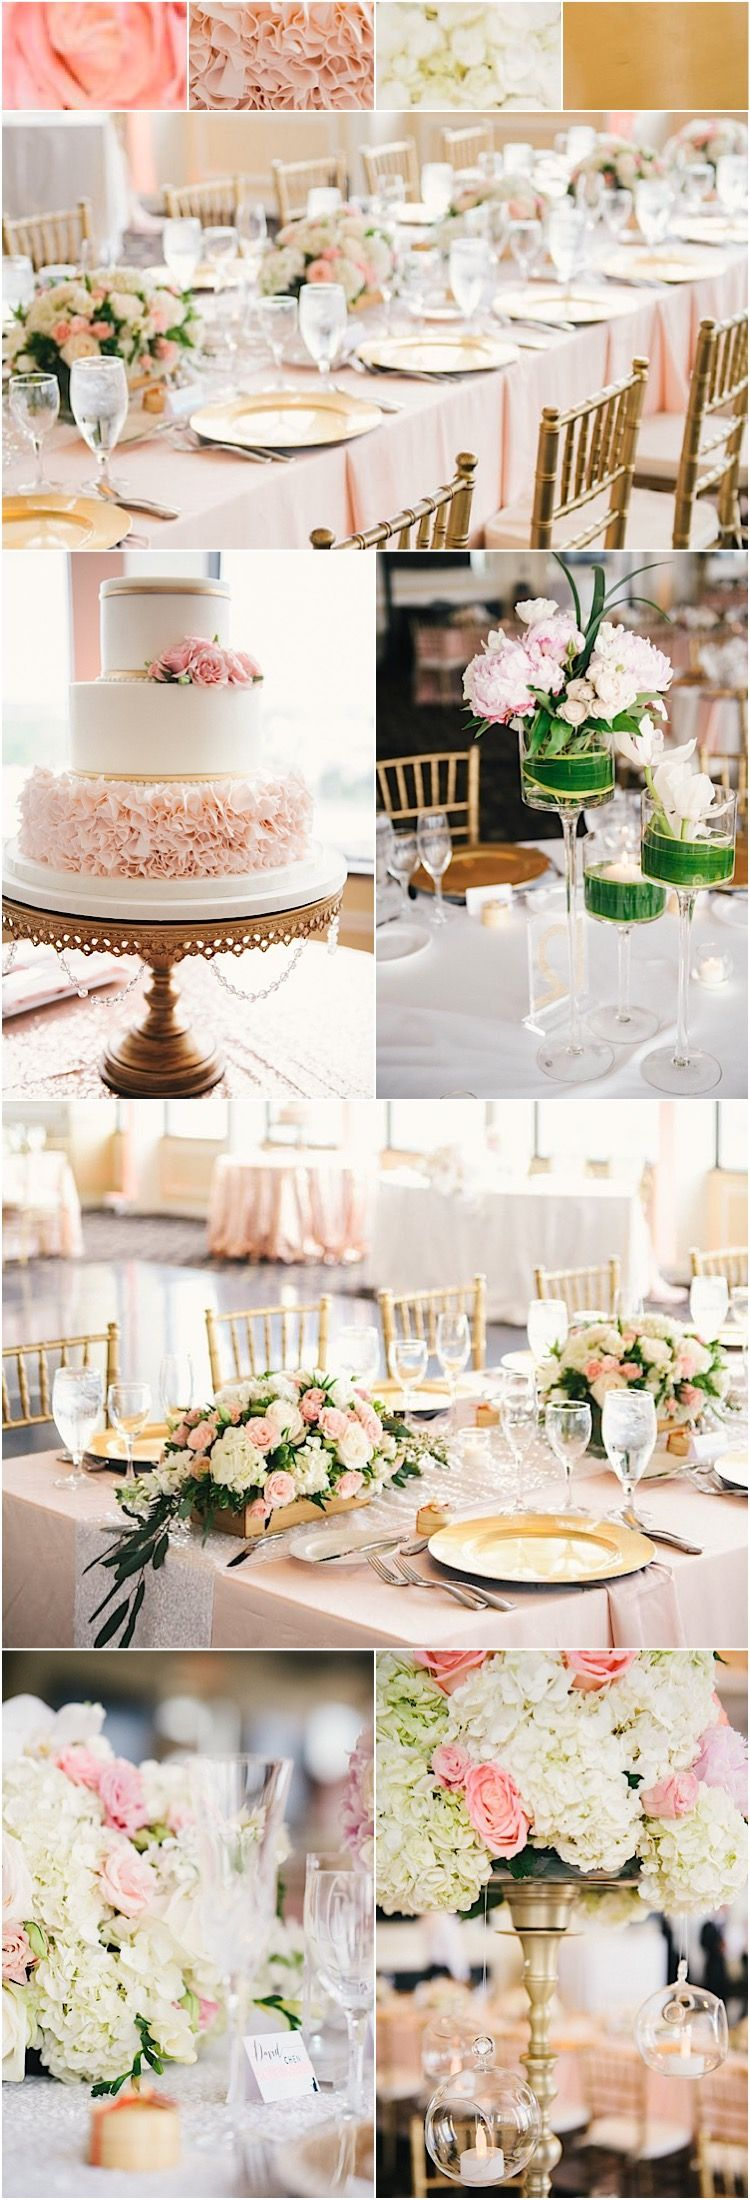 Pretty in Pink Florida Wedding at the Citrus Club | Gold weddings ...